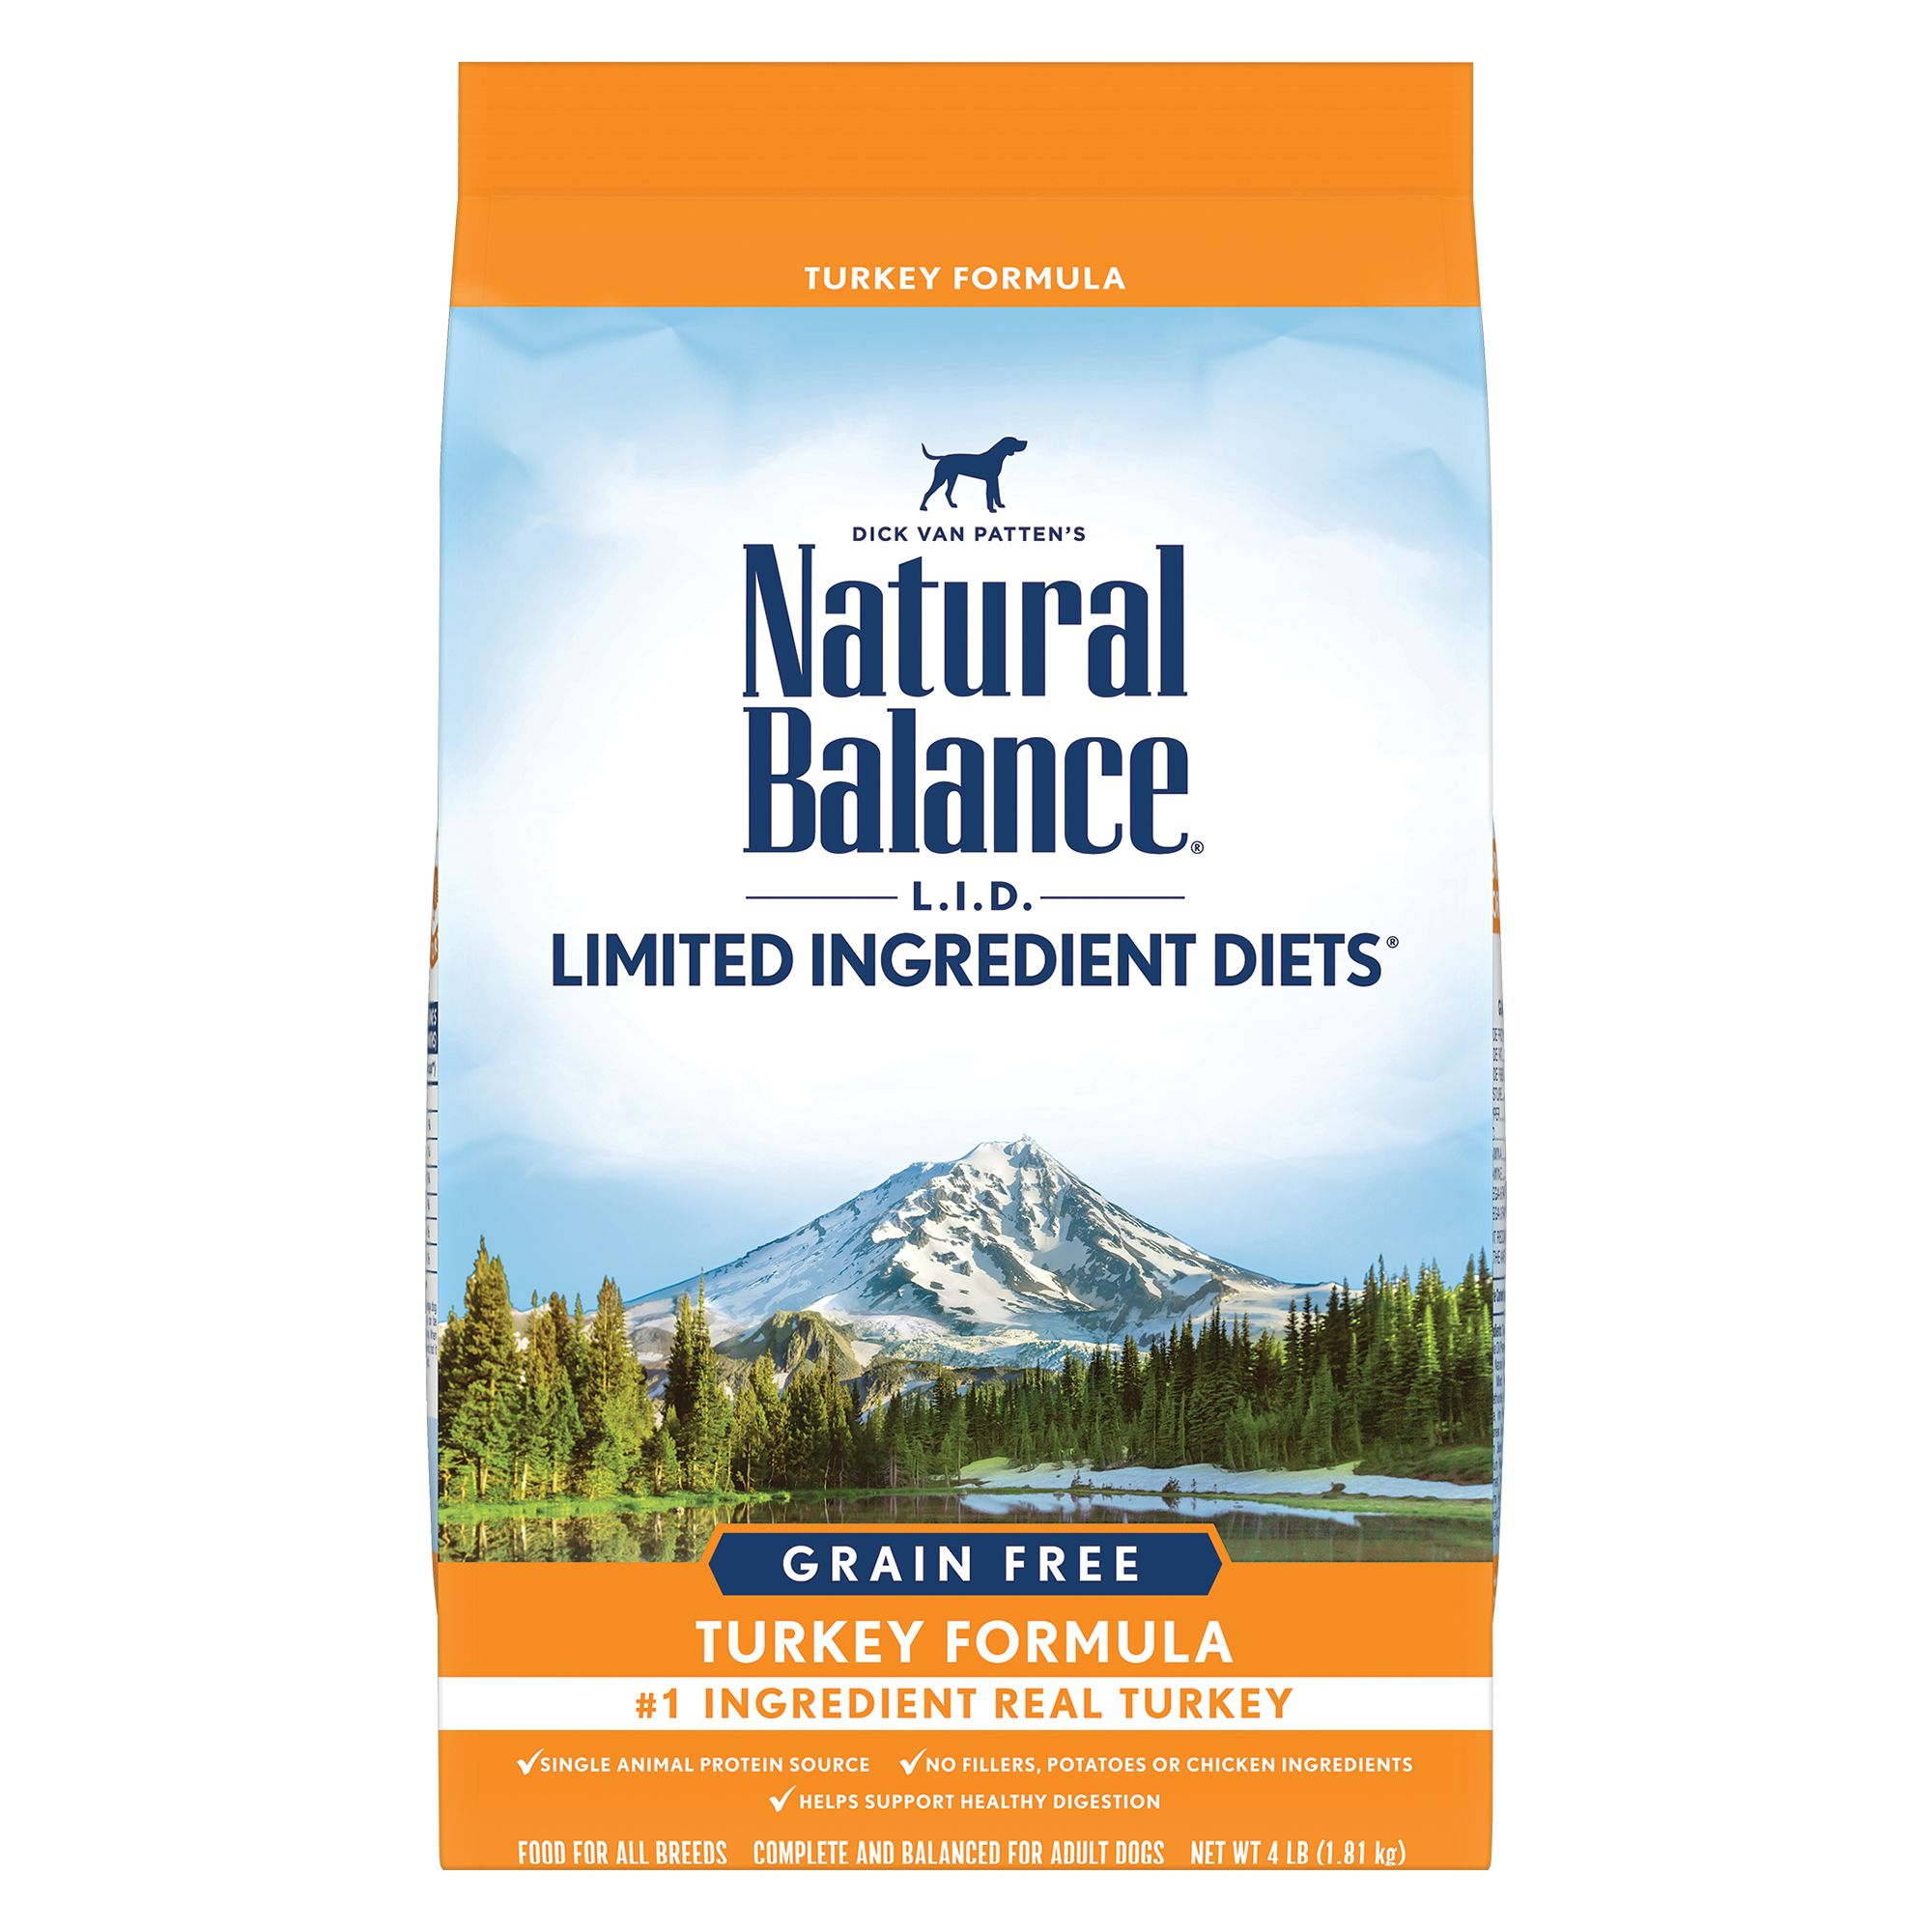 Natural Balance Limited Ingredient Diets High Protein Dog Food - Natural, Grain Free, Turkey size: 4 Lb, Kibble, Adult 5266298